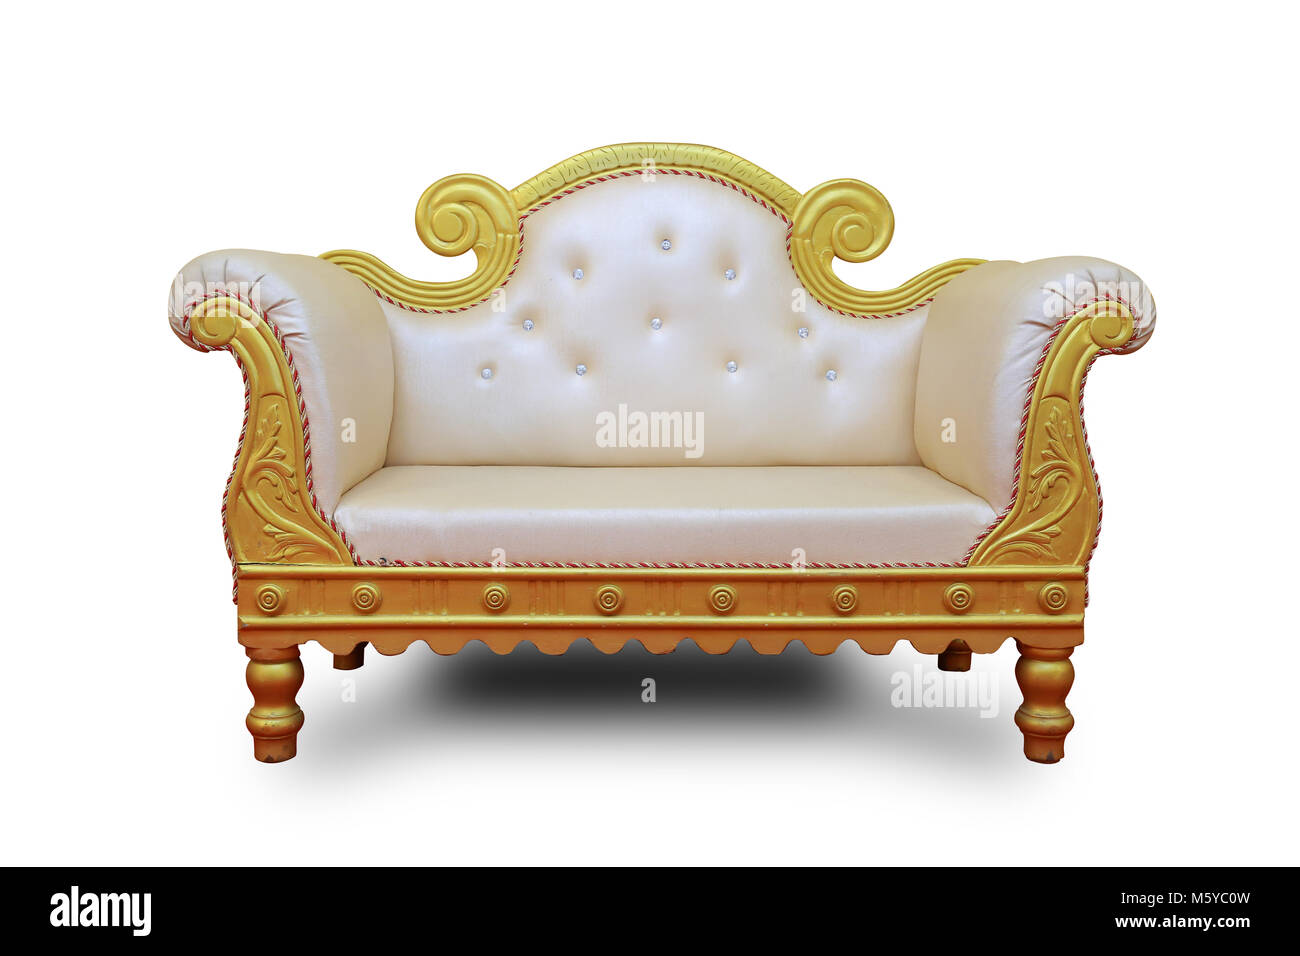 sofa set chairs for bride groom on white background stock photo alamy https www alamy com stock photo sofa set chairs for bride groom on white background 175779097 html